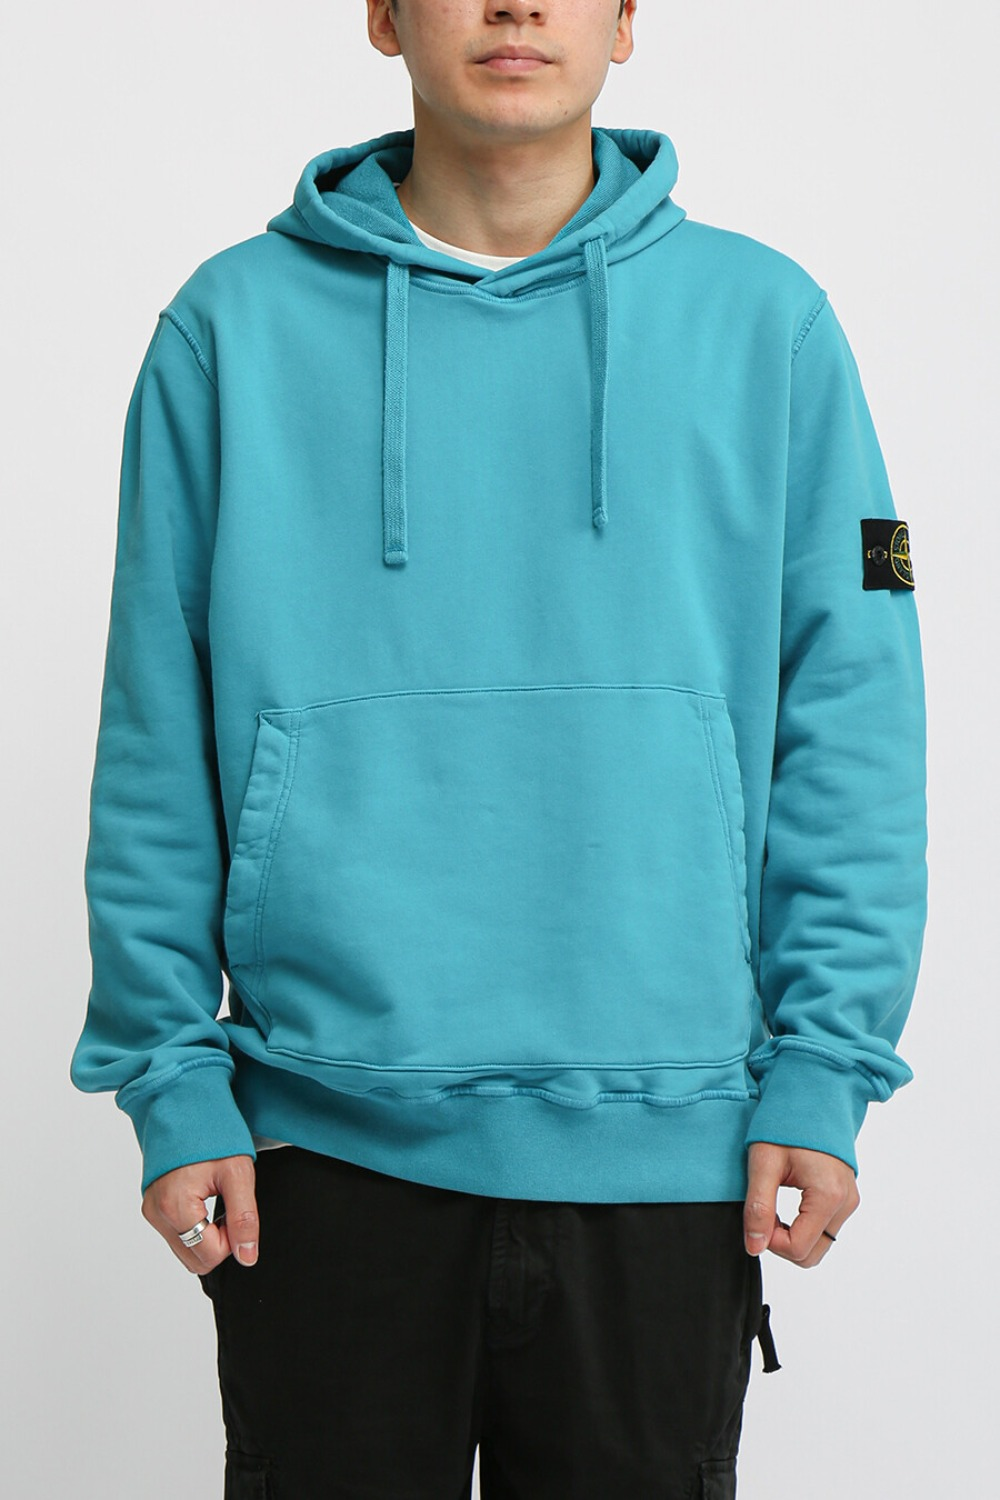 COTTON FLEECE GARMENT DYED HOODED SWEAT SHIRT AQUA